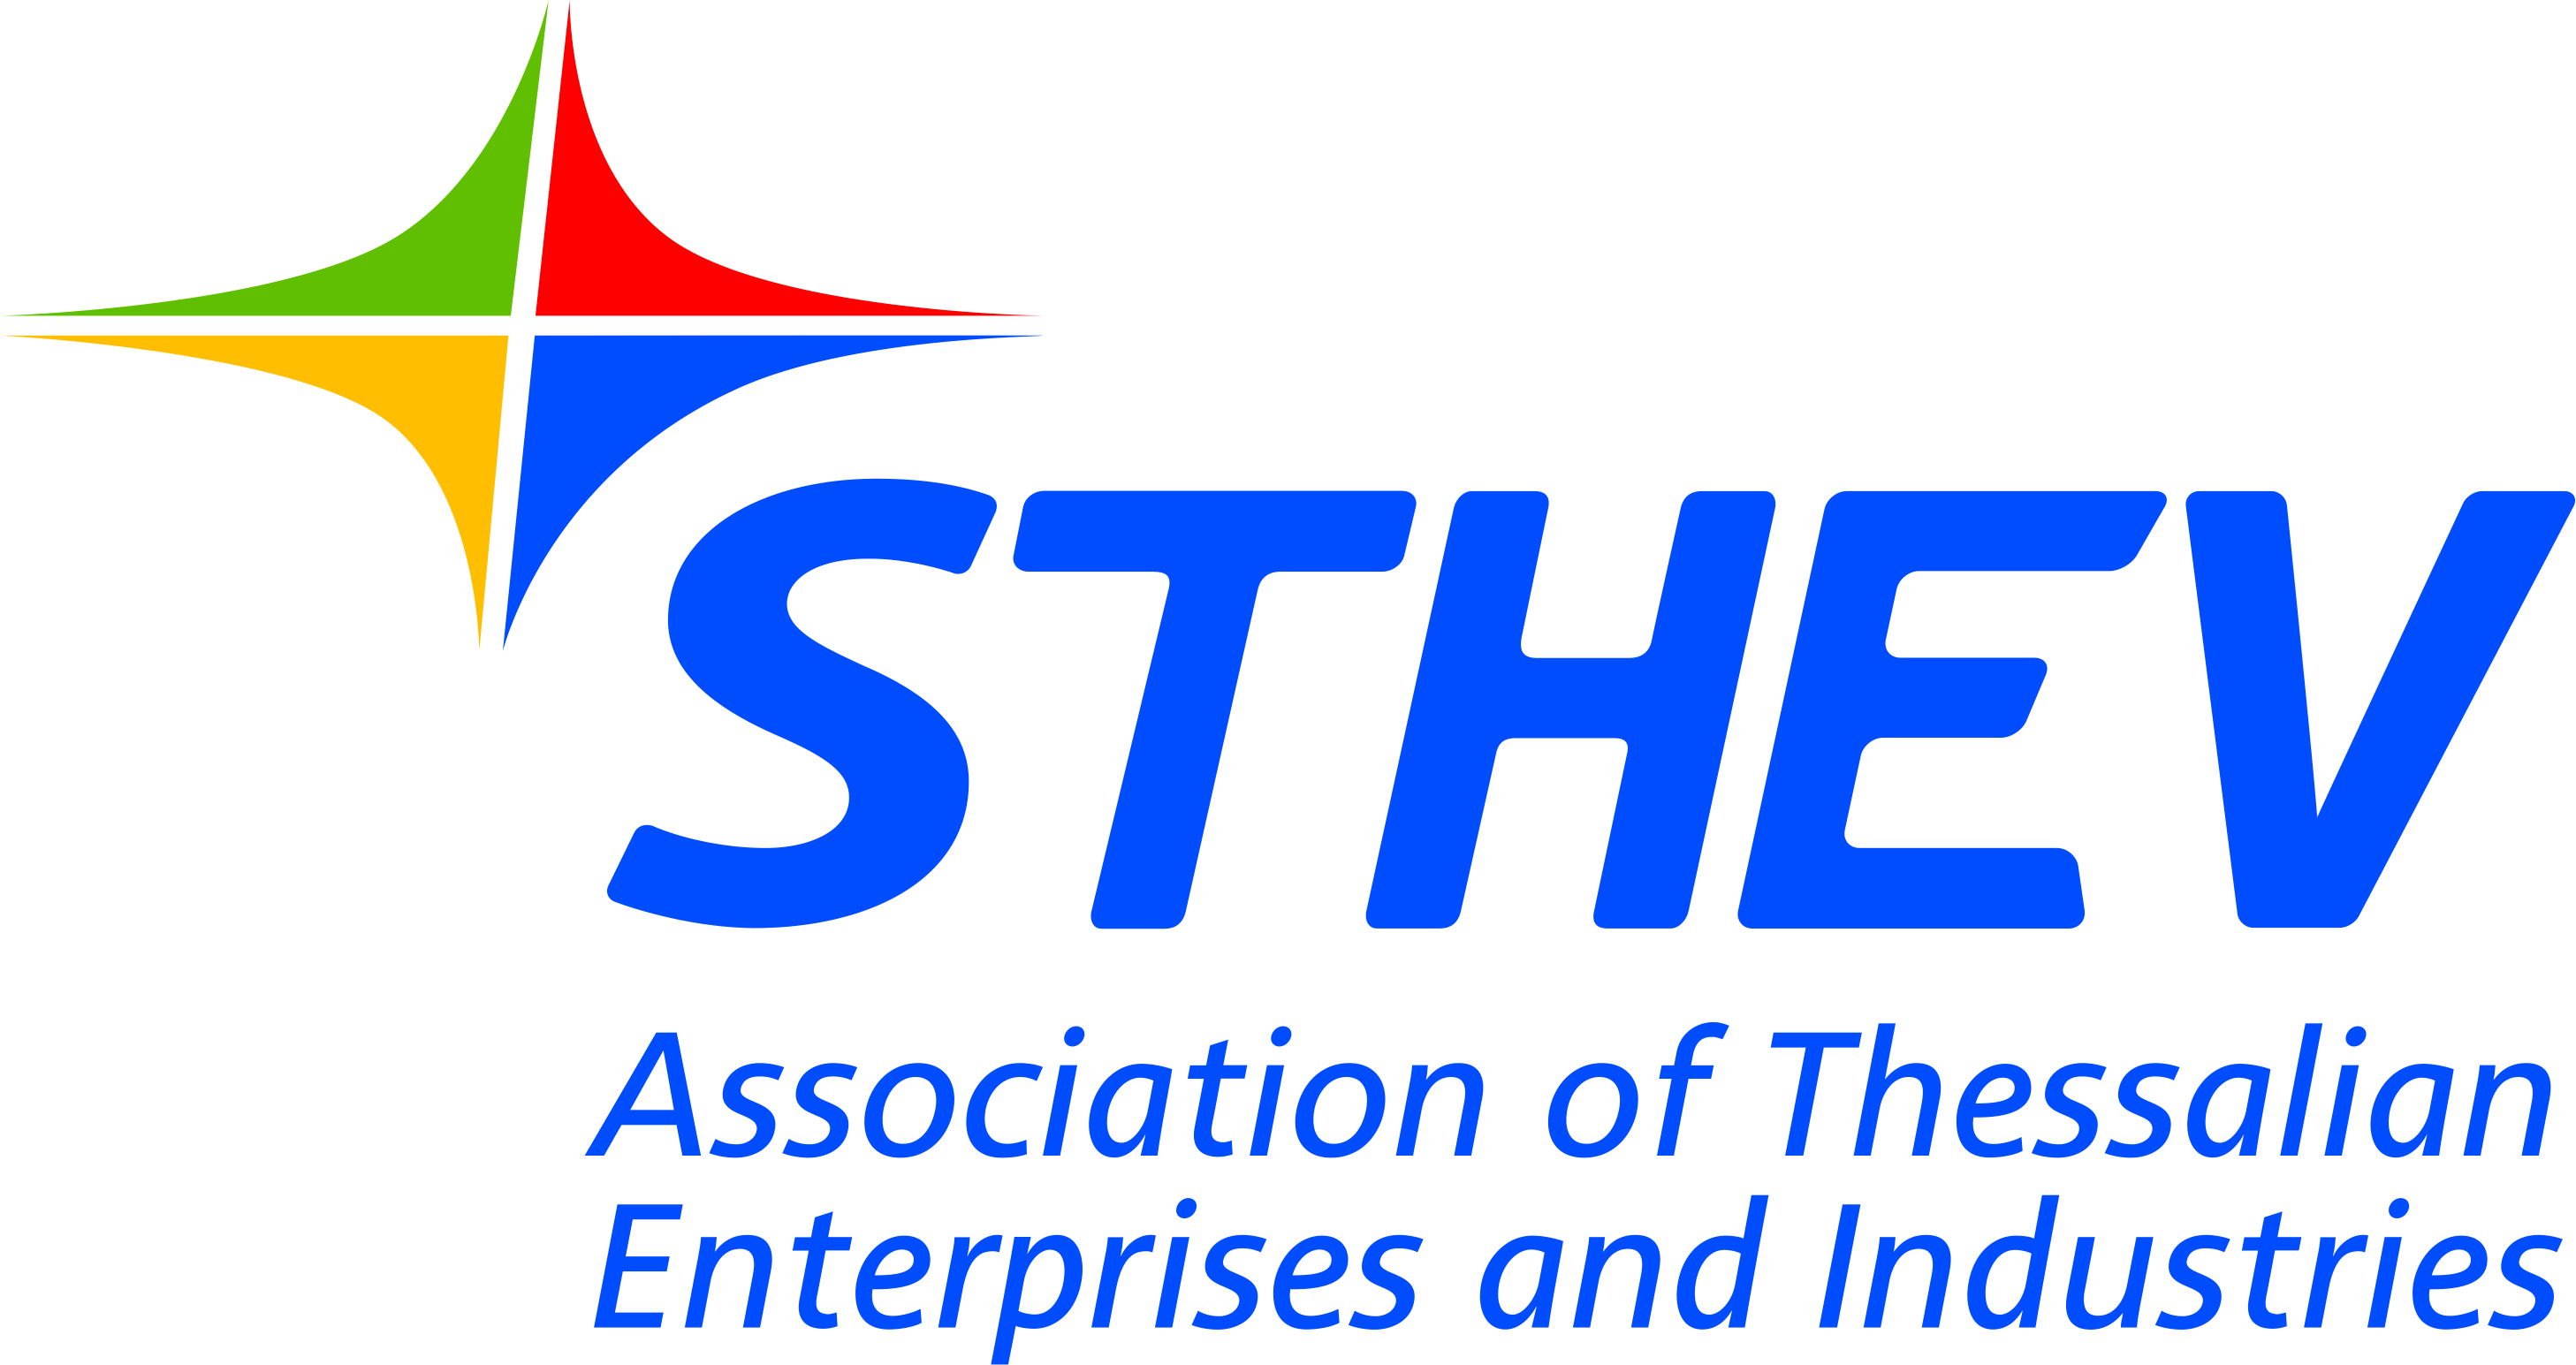 Association of Thessalian Enterprises and Industries - STHEV